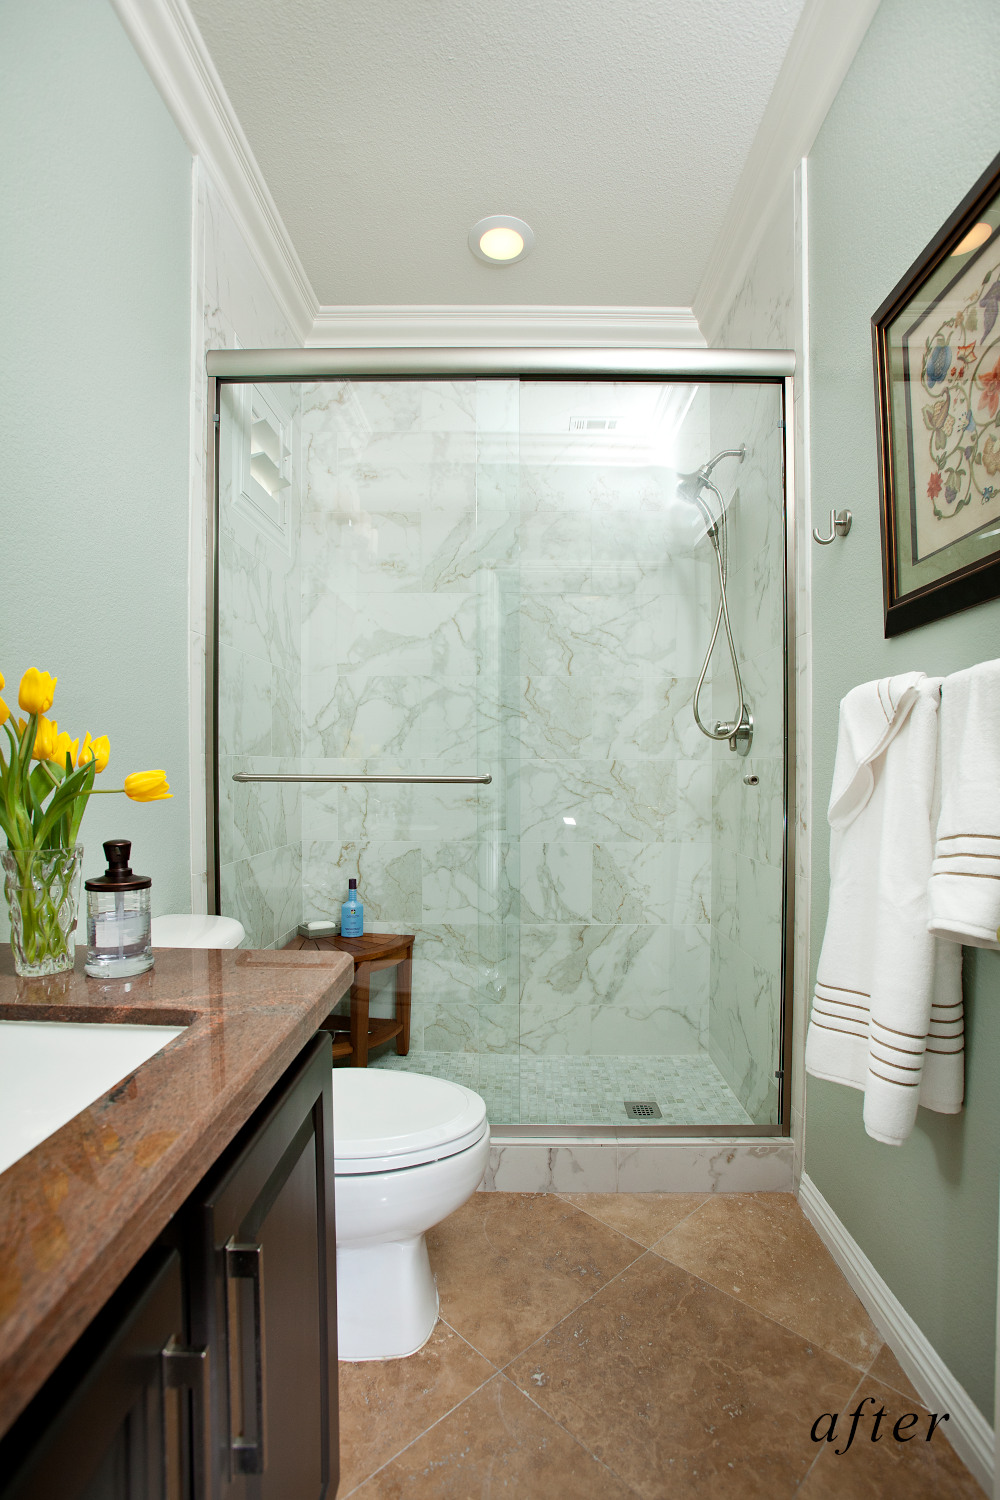 After remodel image: new bathroom, walk-in shower, light green colored  marble, new vanity and top.